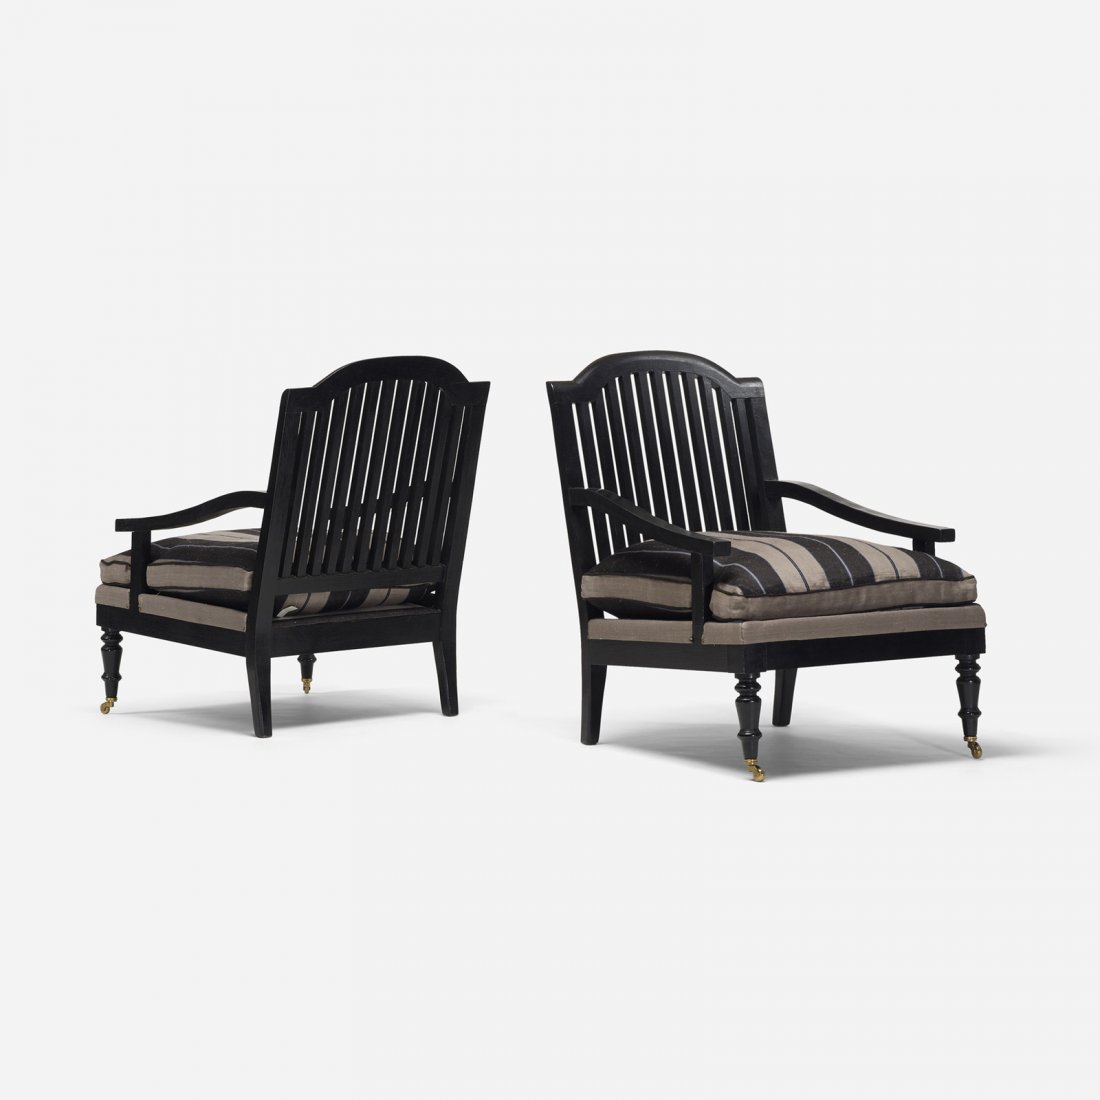 American, lounge chairs, pair